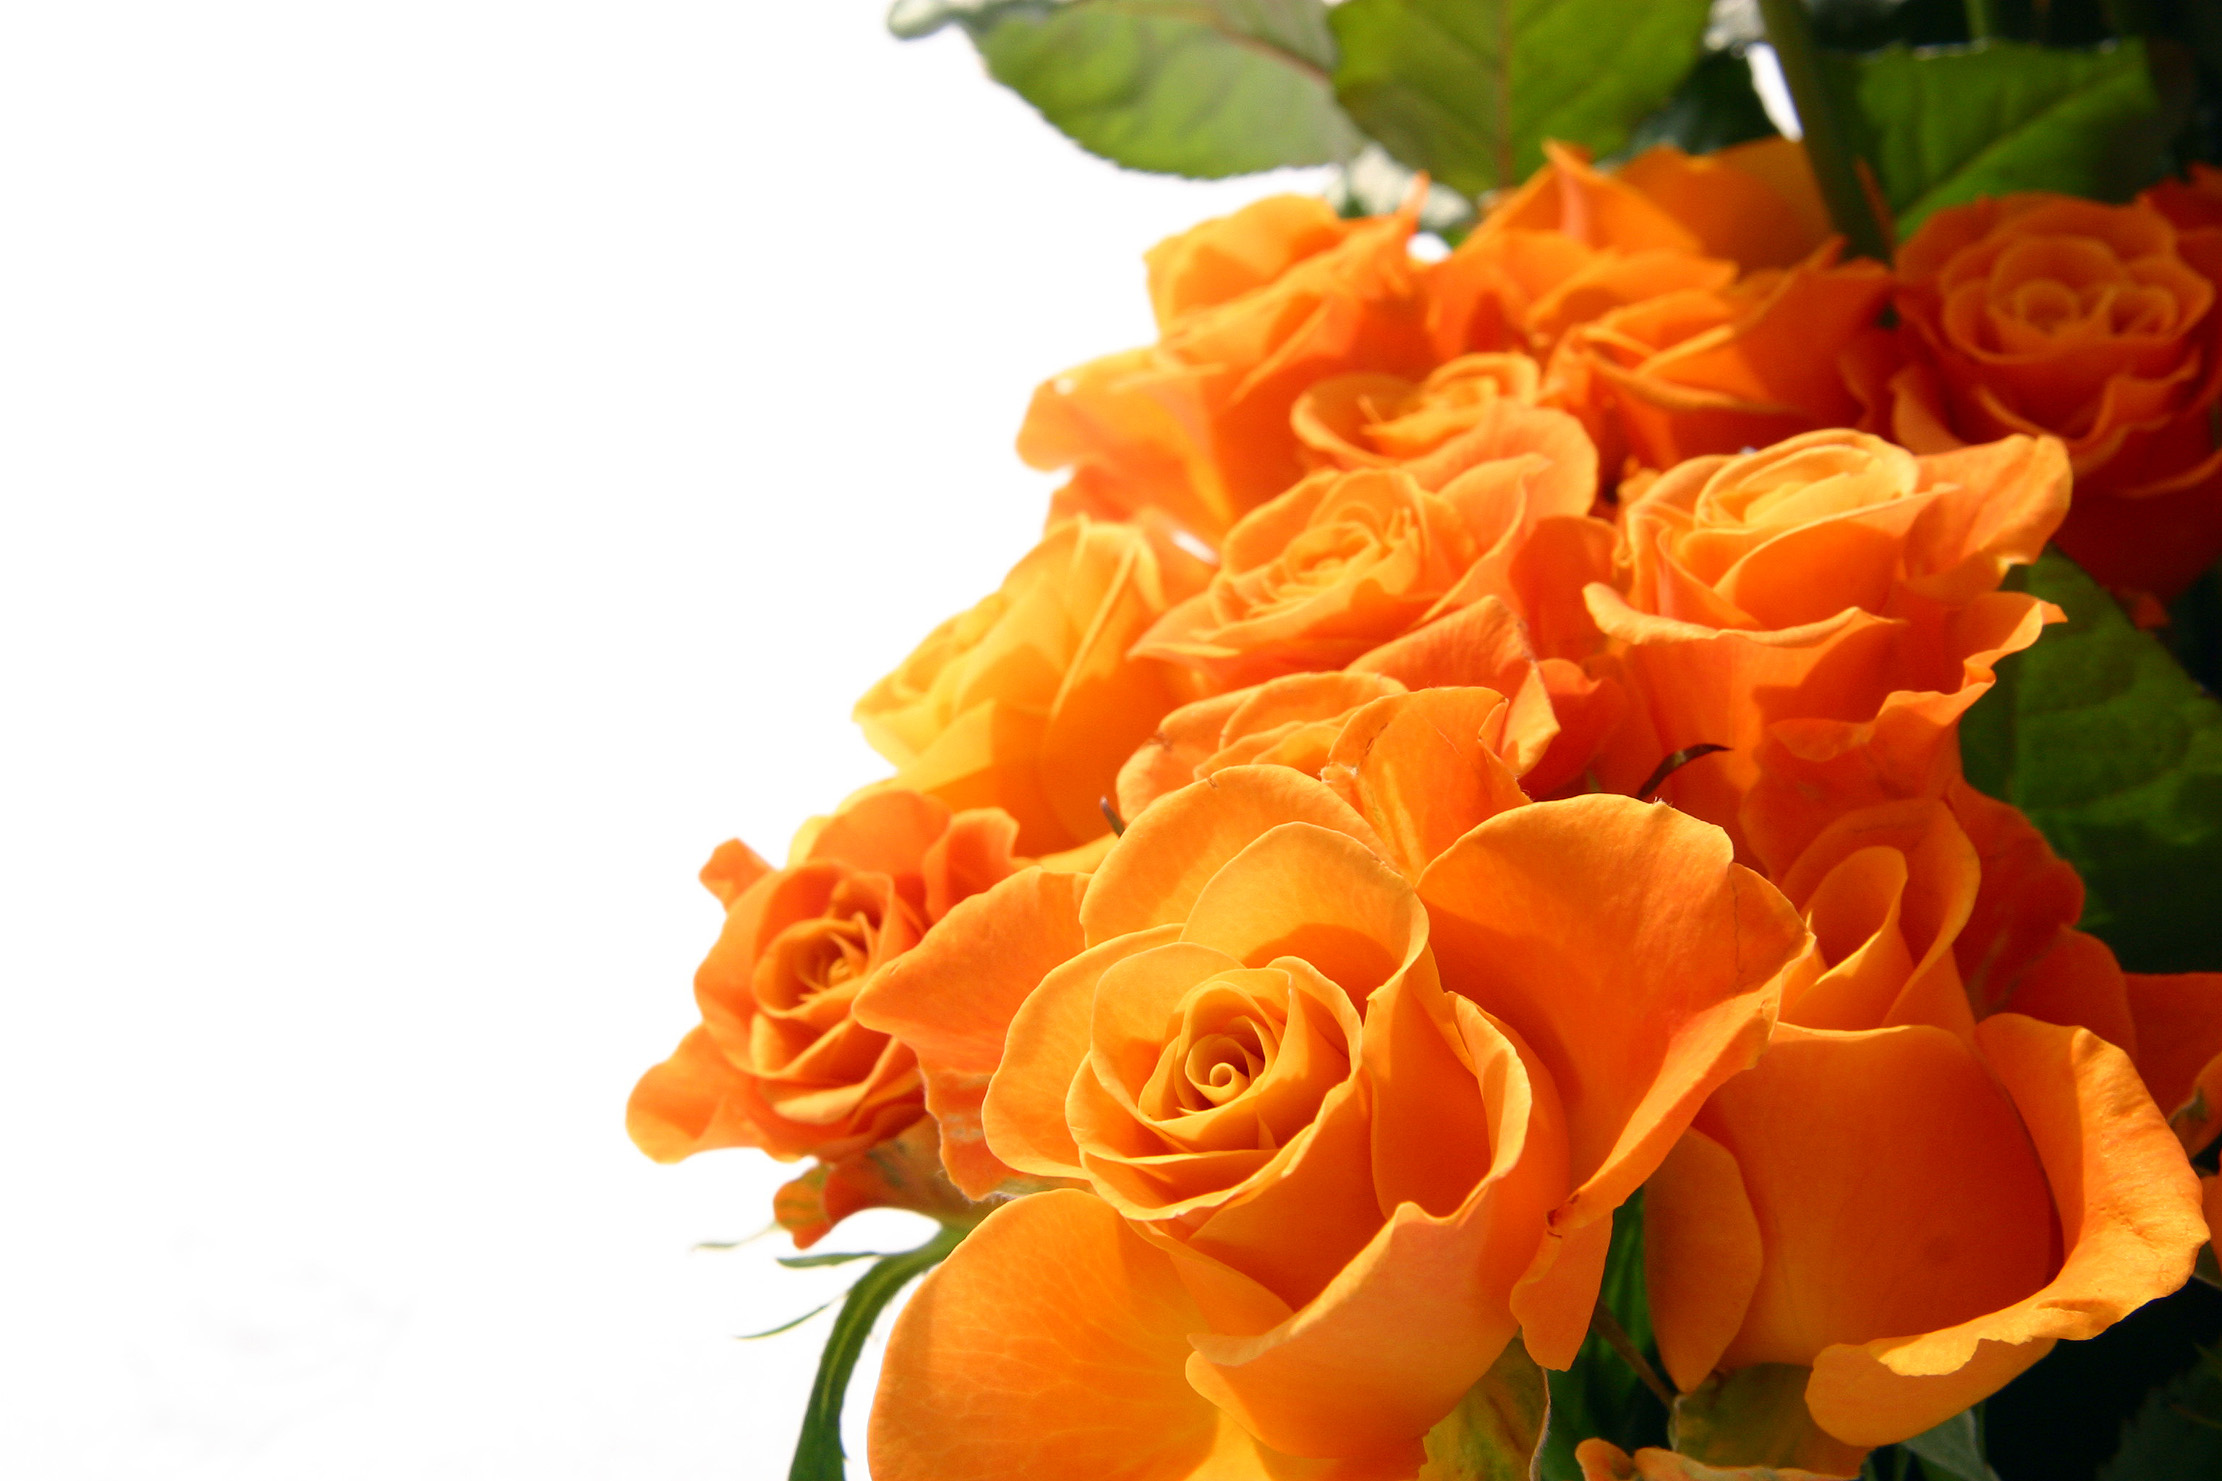 Keep flowers fresh overnight for delivery